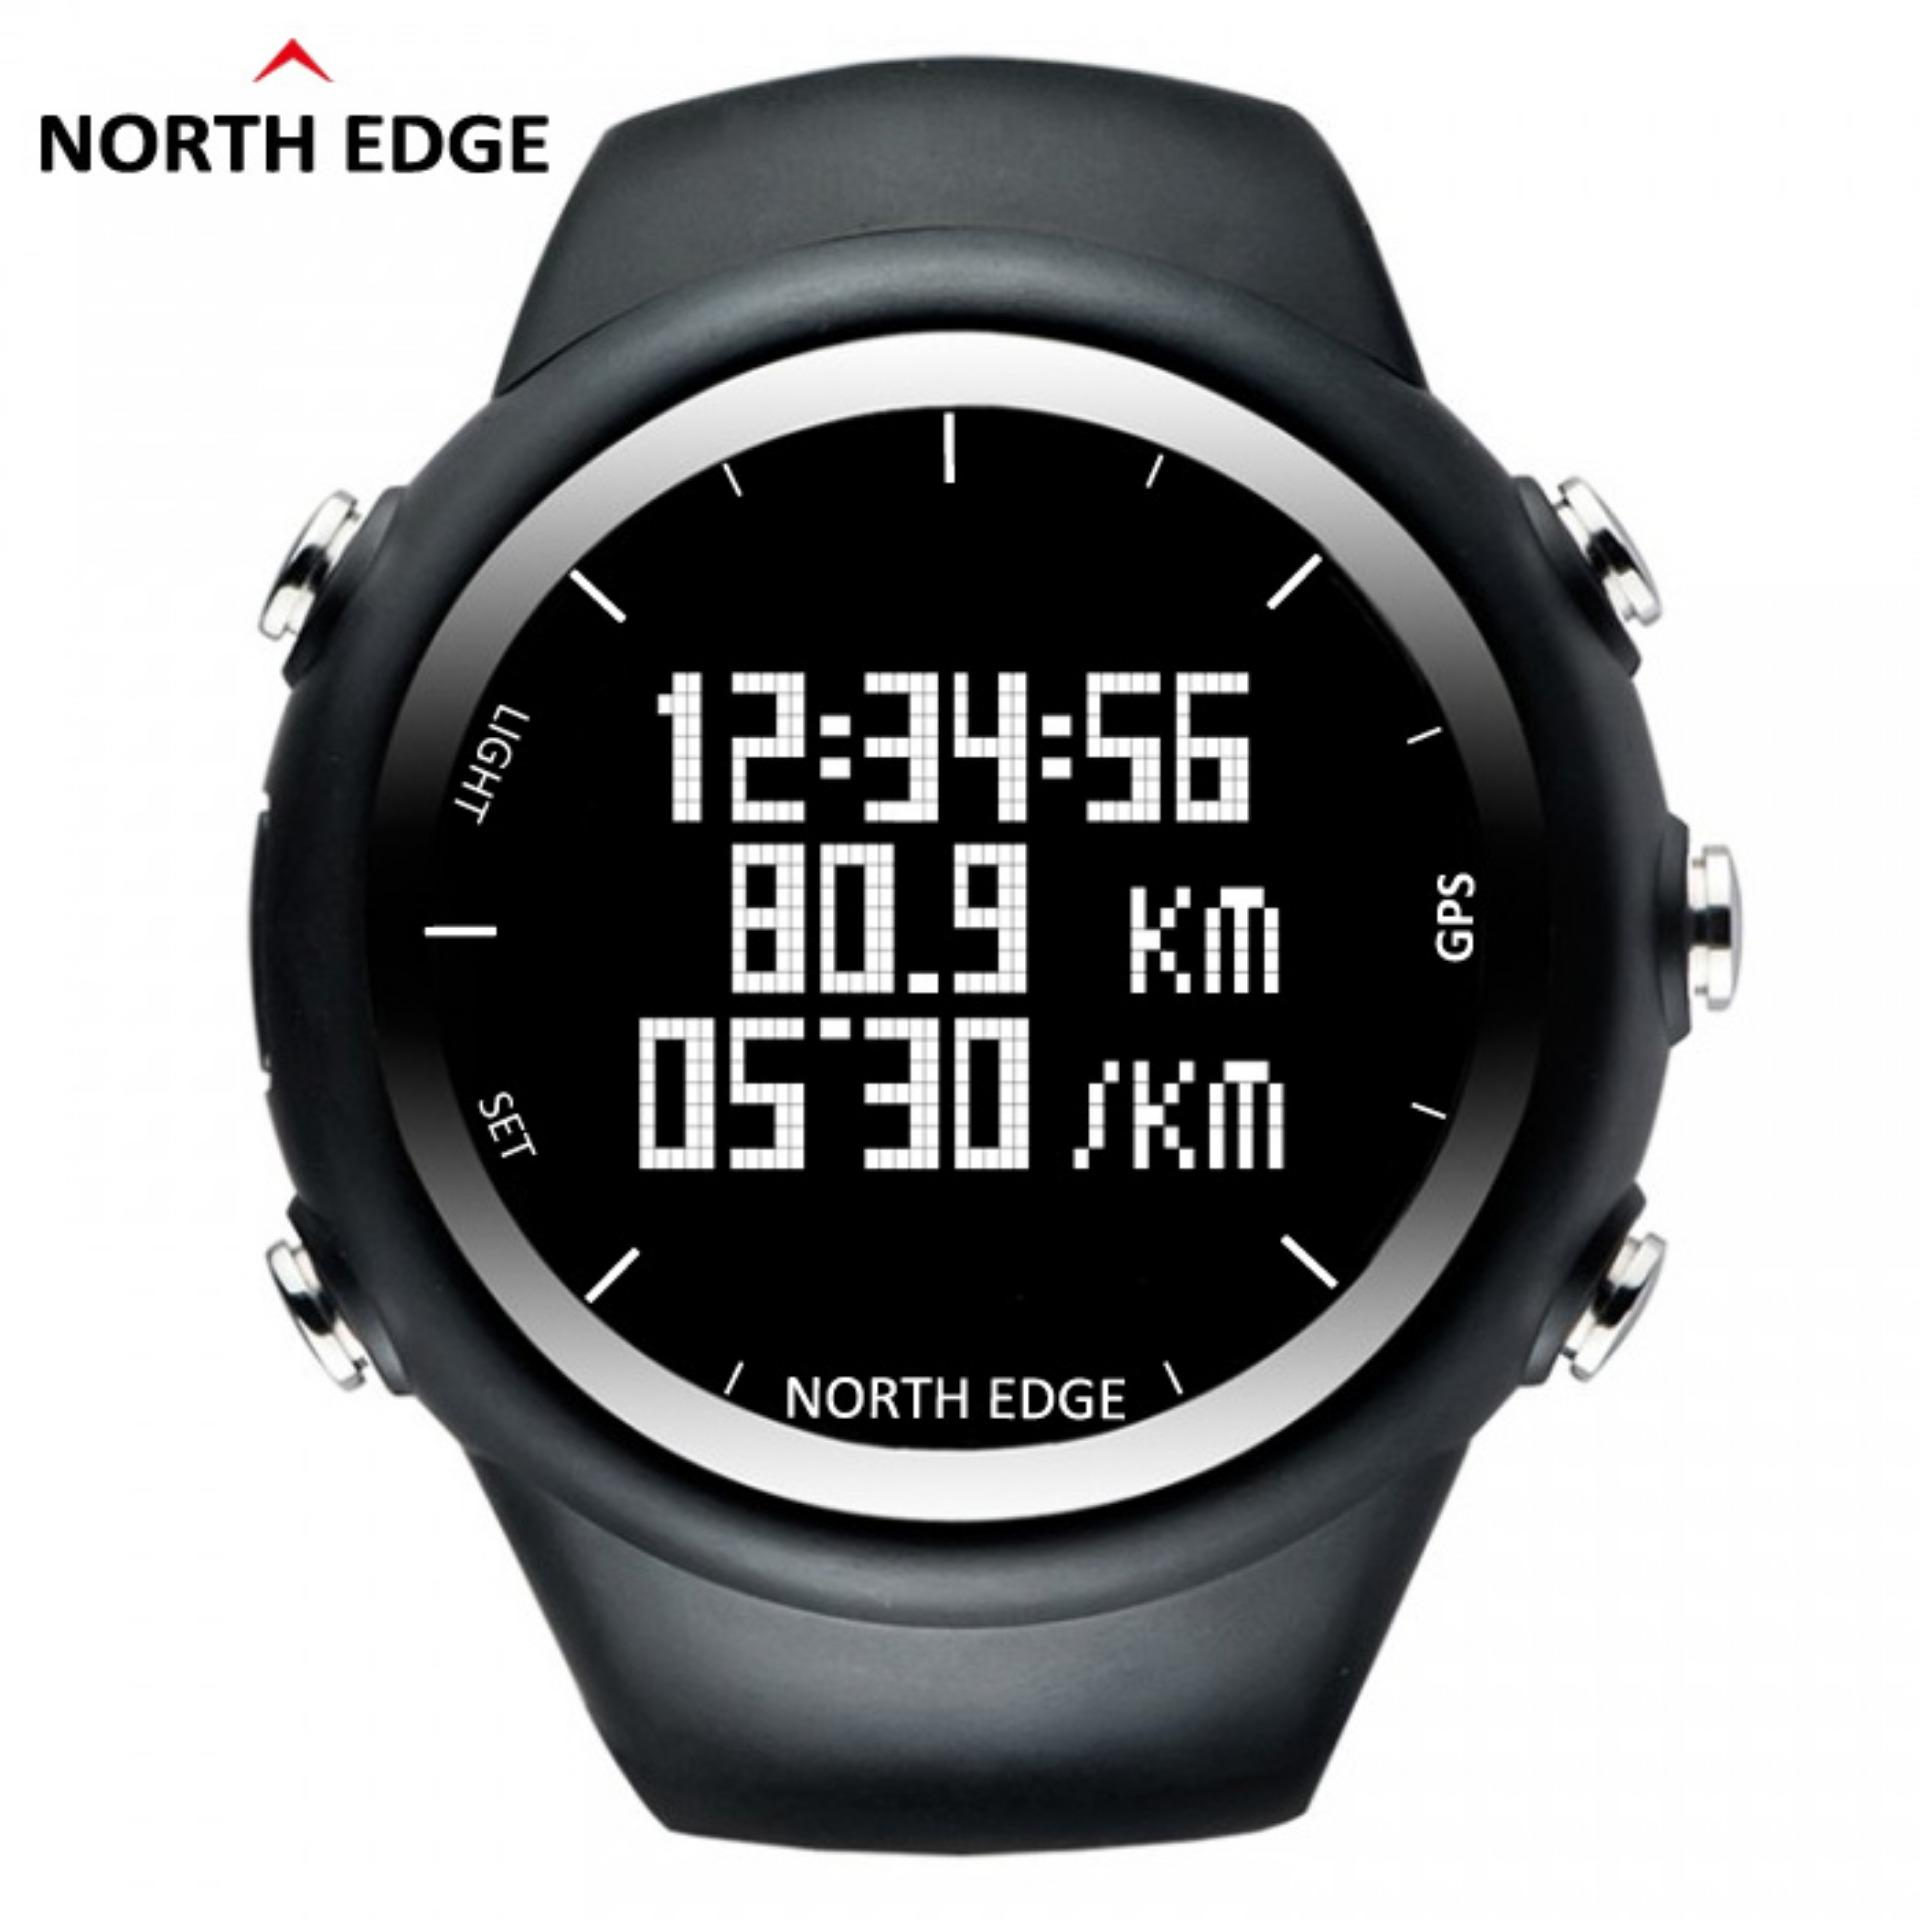 ... NORTH EDGE GPS Running Sports Digital Watch Men and Women Smart Watch for Swimming Diving Sailing ...